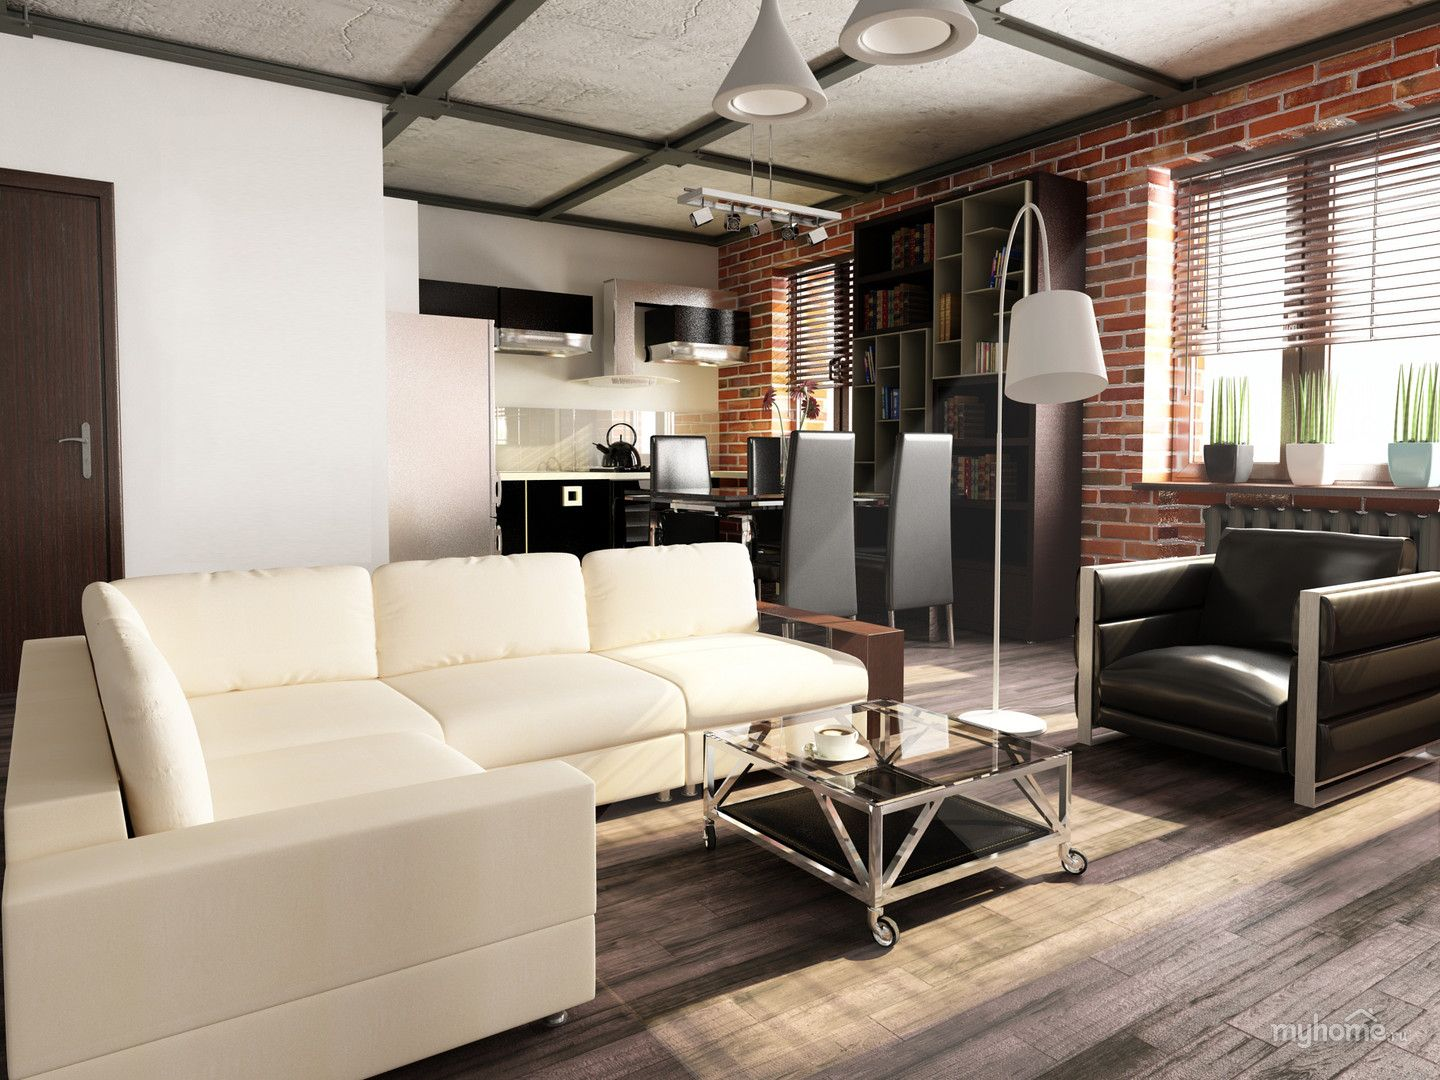 1000+ images about Лофт/loft on pinterest | industrial interior, Wohnideen design